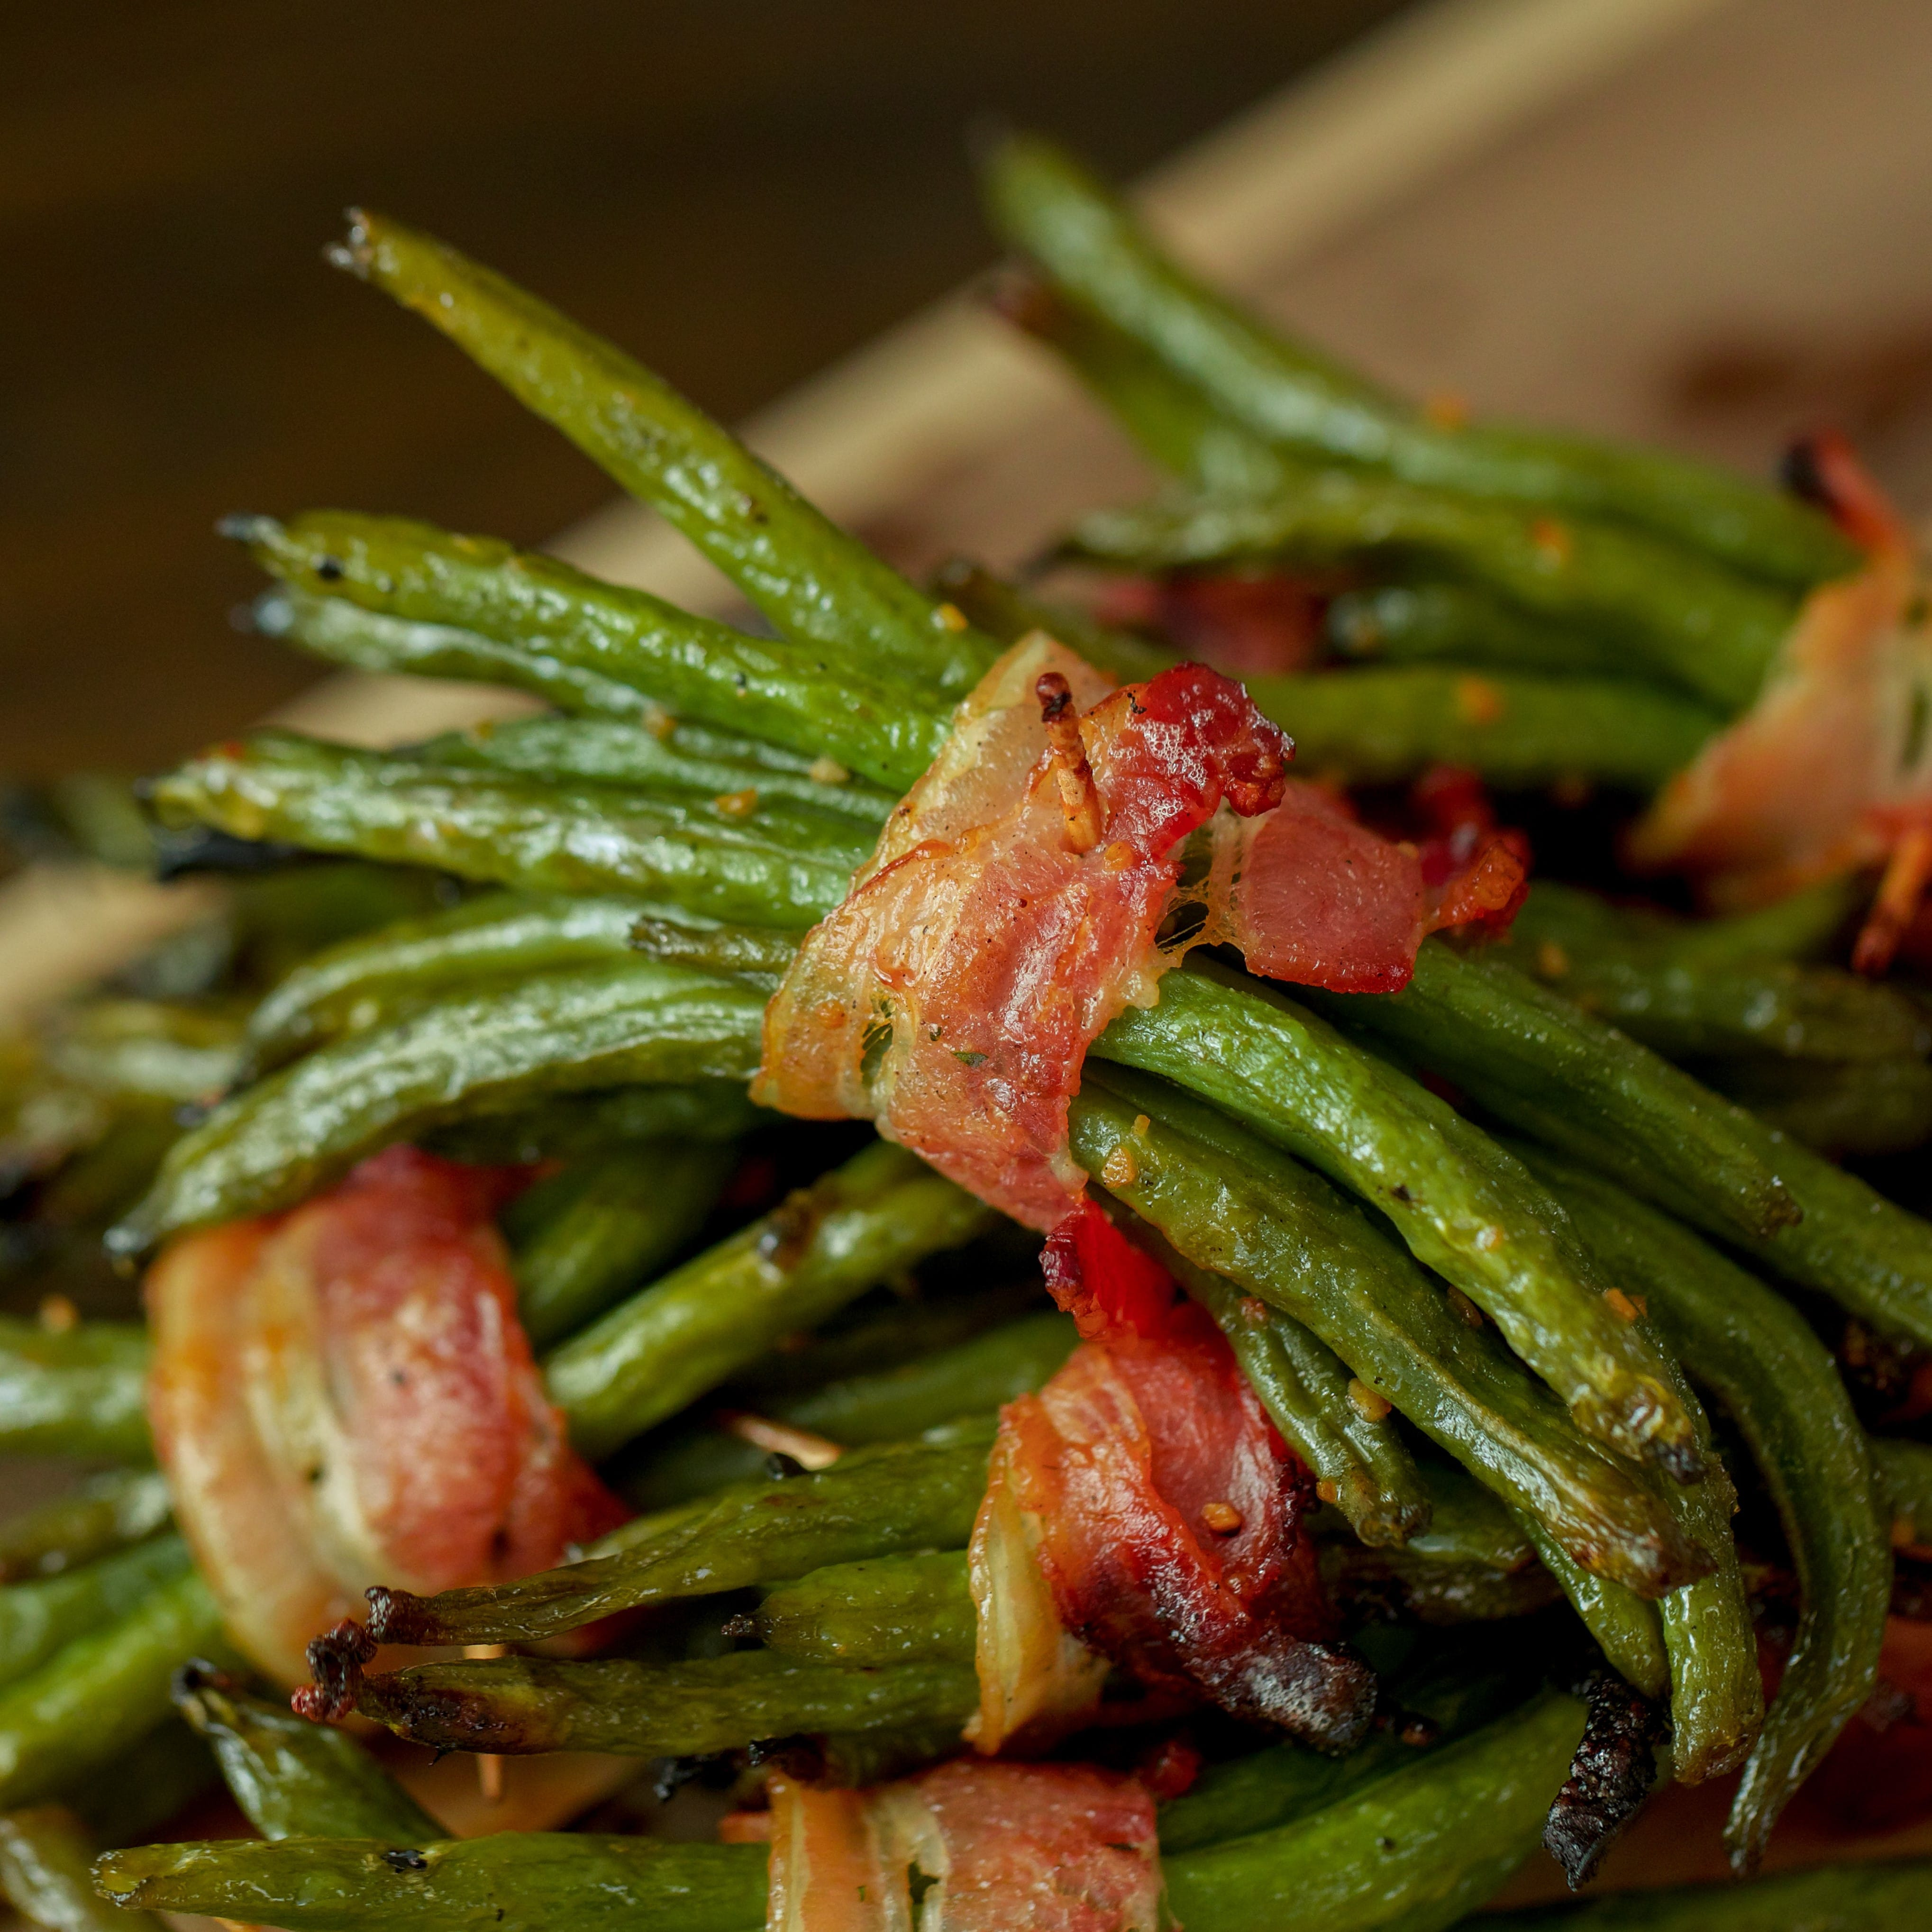 Bacon Wrapped Green Bean Bundles in a stack on a wooden cutting board